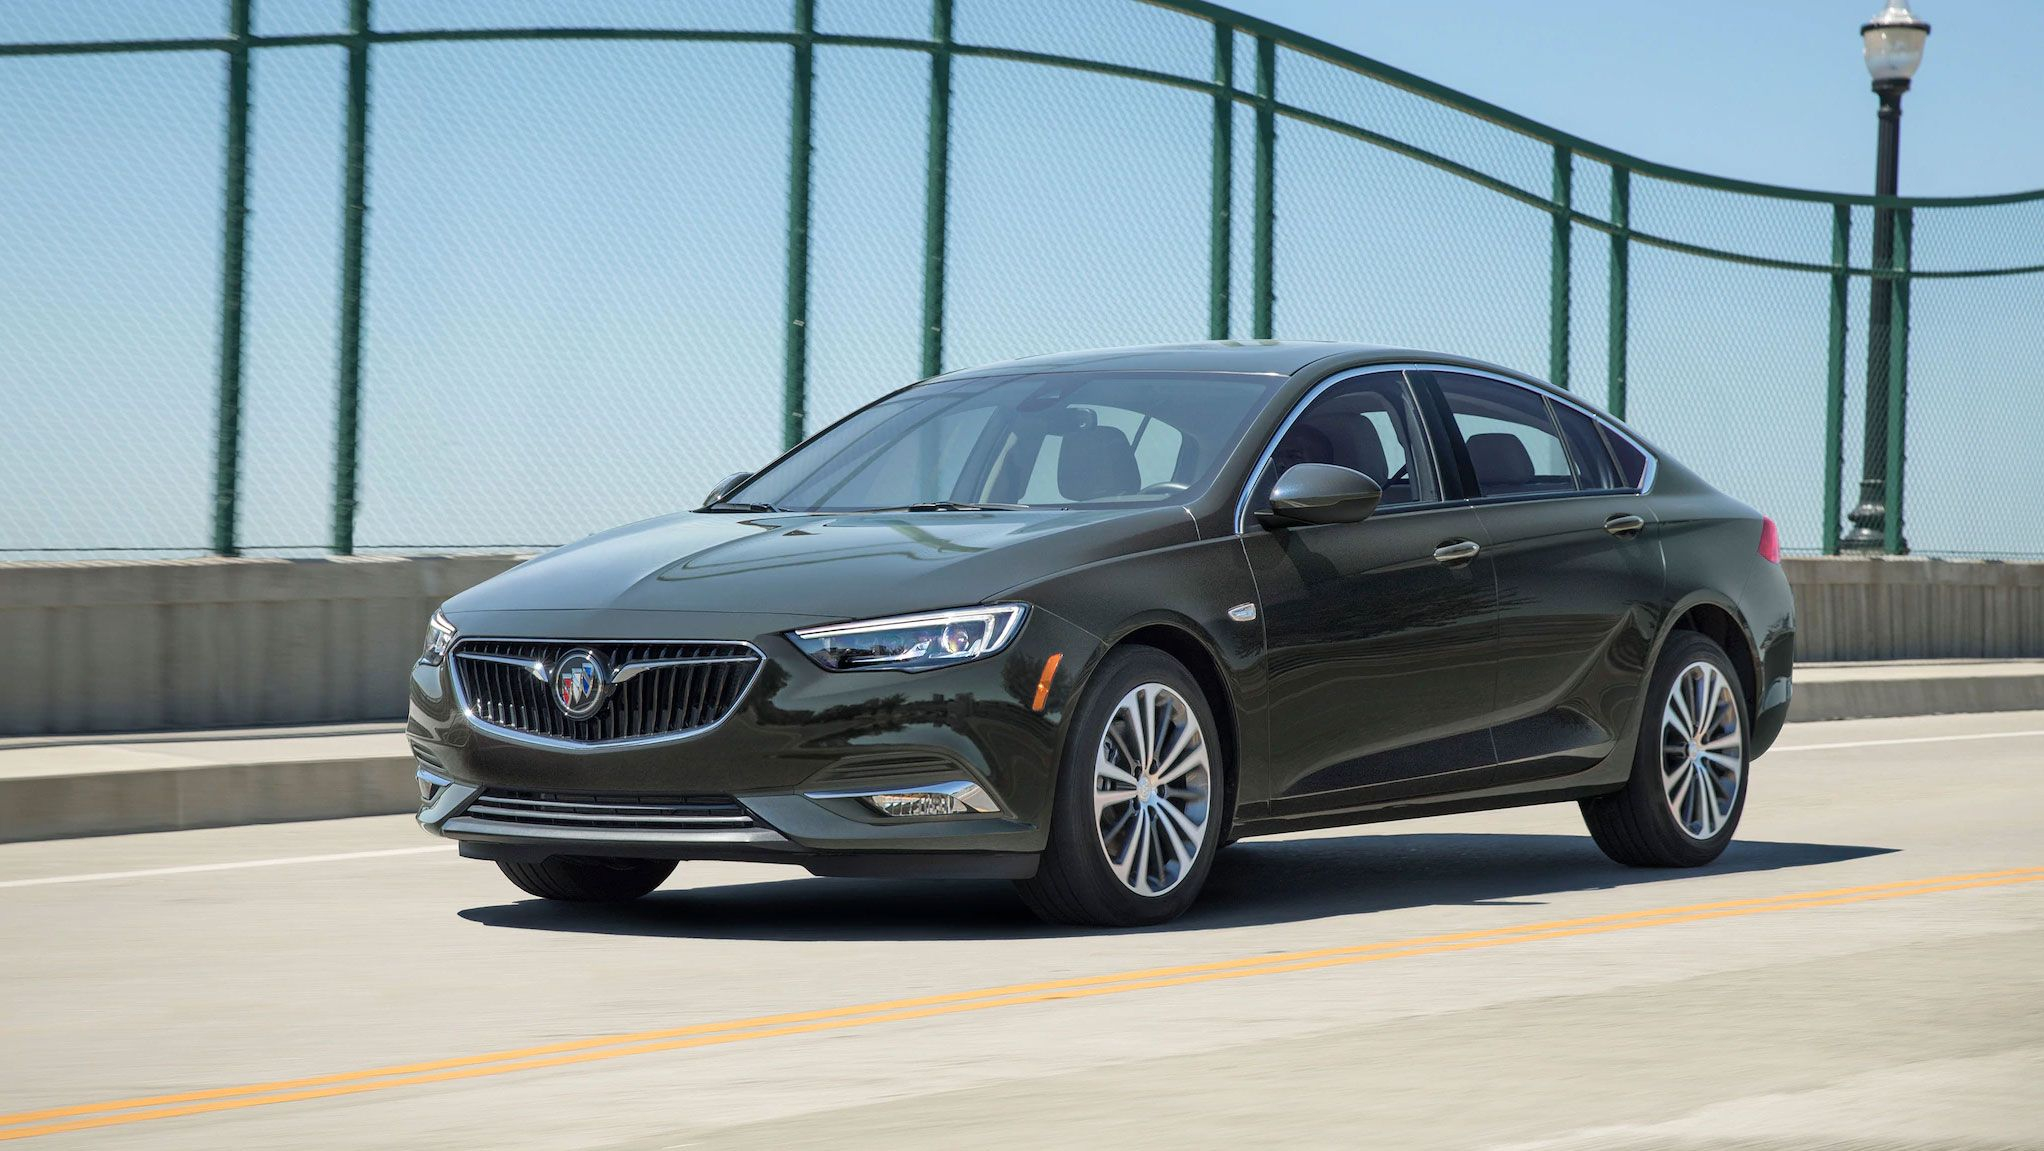 2020 Buick Regal Sportback Review, Pricing, And Specs New 2021 Buick Regal Sportback Specs, Used, 0-60